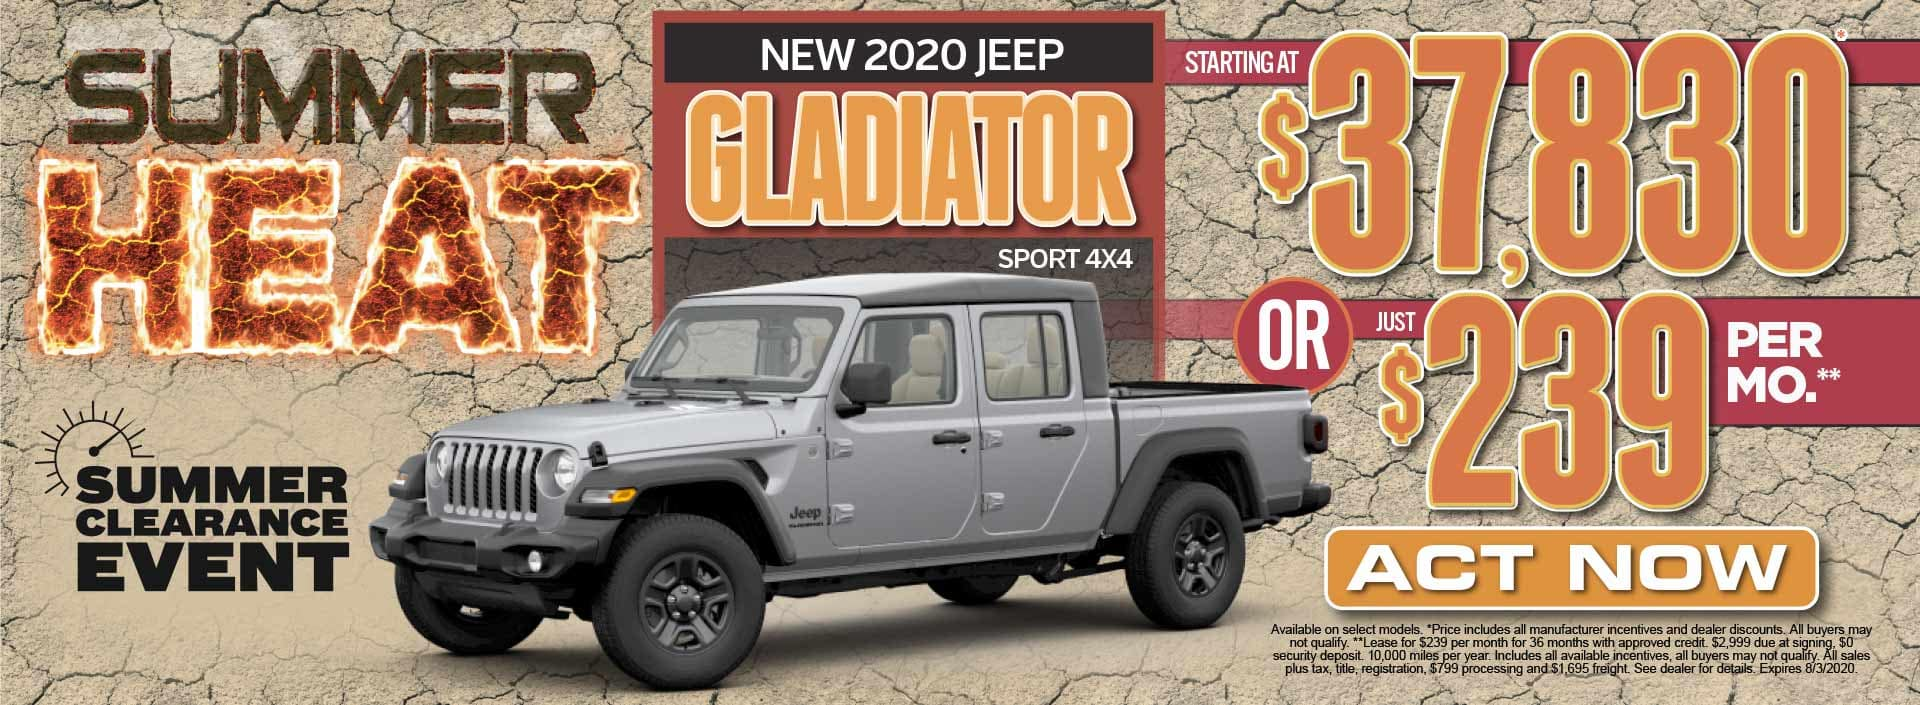 New 2020 Jeep Gladiator Sport Starting at $37,830* Act Now